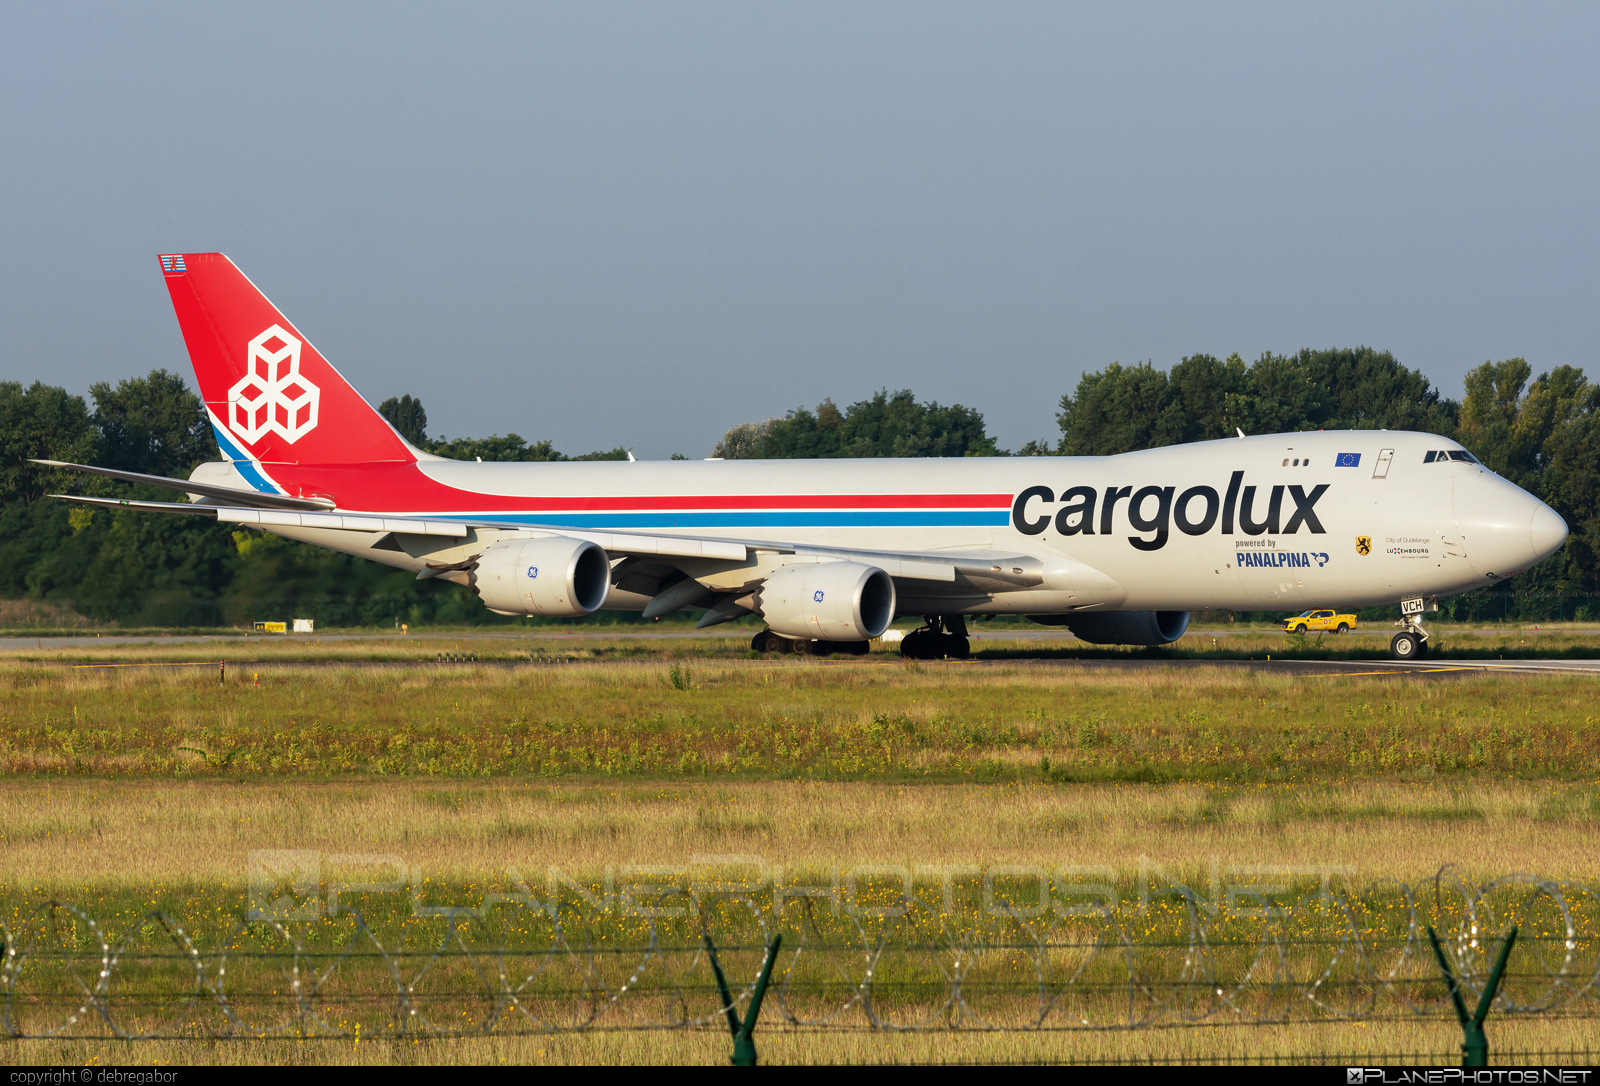 Boeing 747-8F - LX-VCH operated by Cargolux Airlines International #b747 #b747f #b747freighter #boeing #boeing747 #cargolux #jumbo